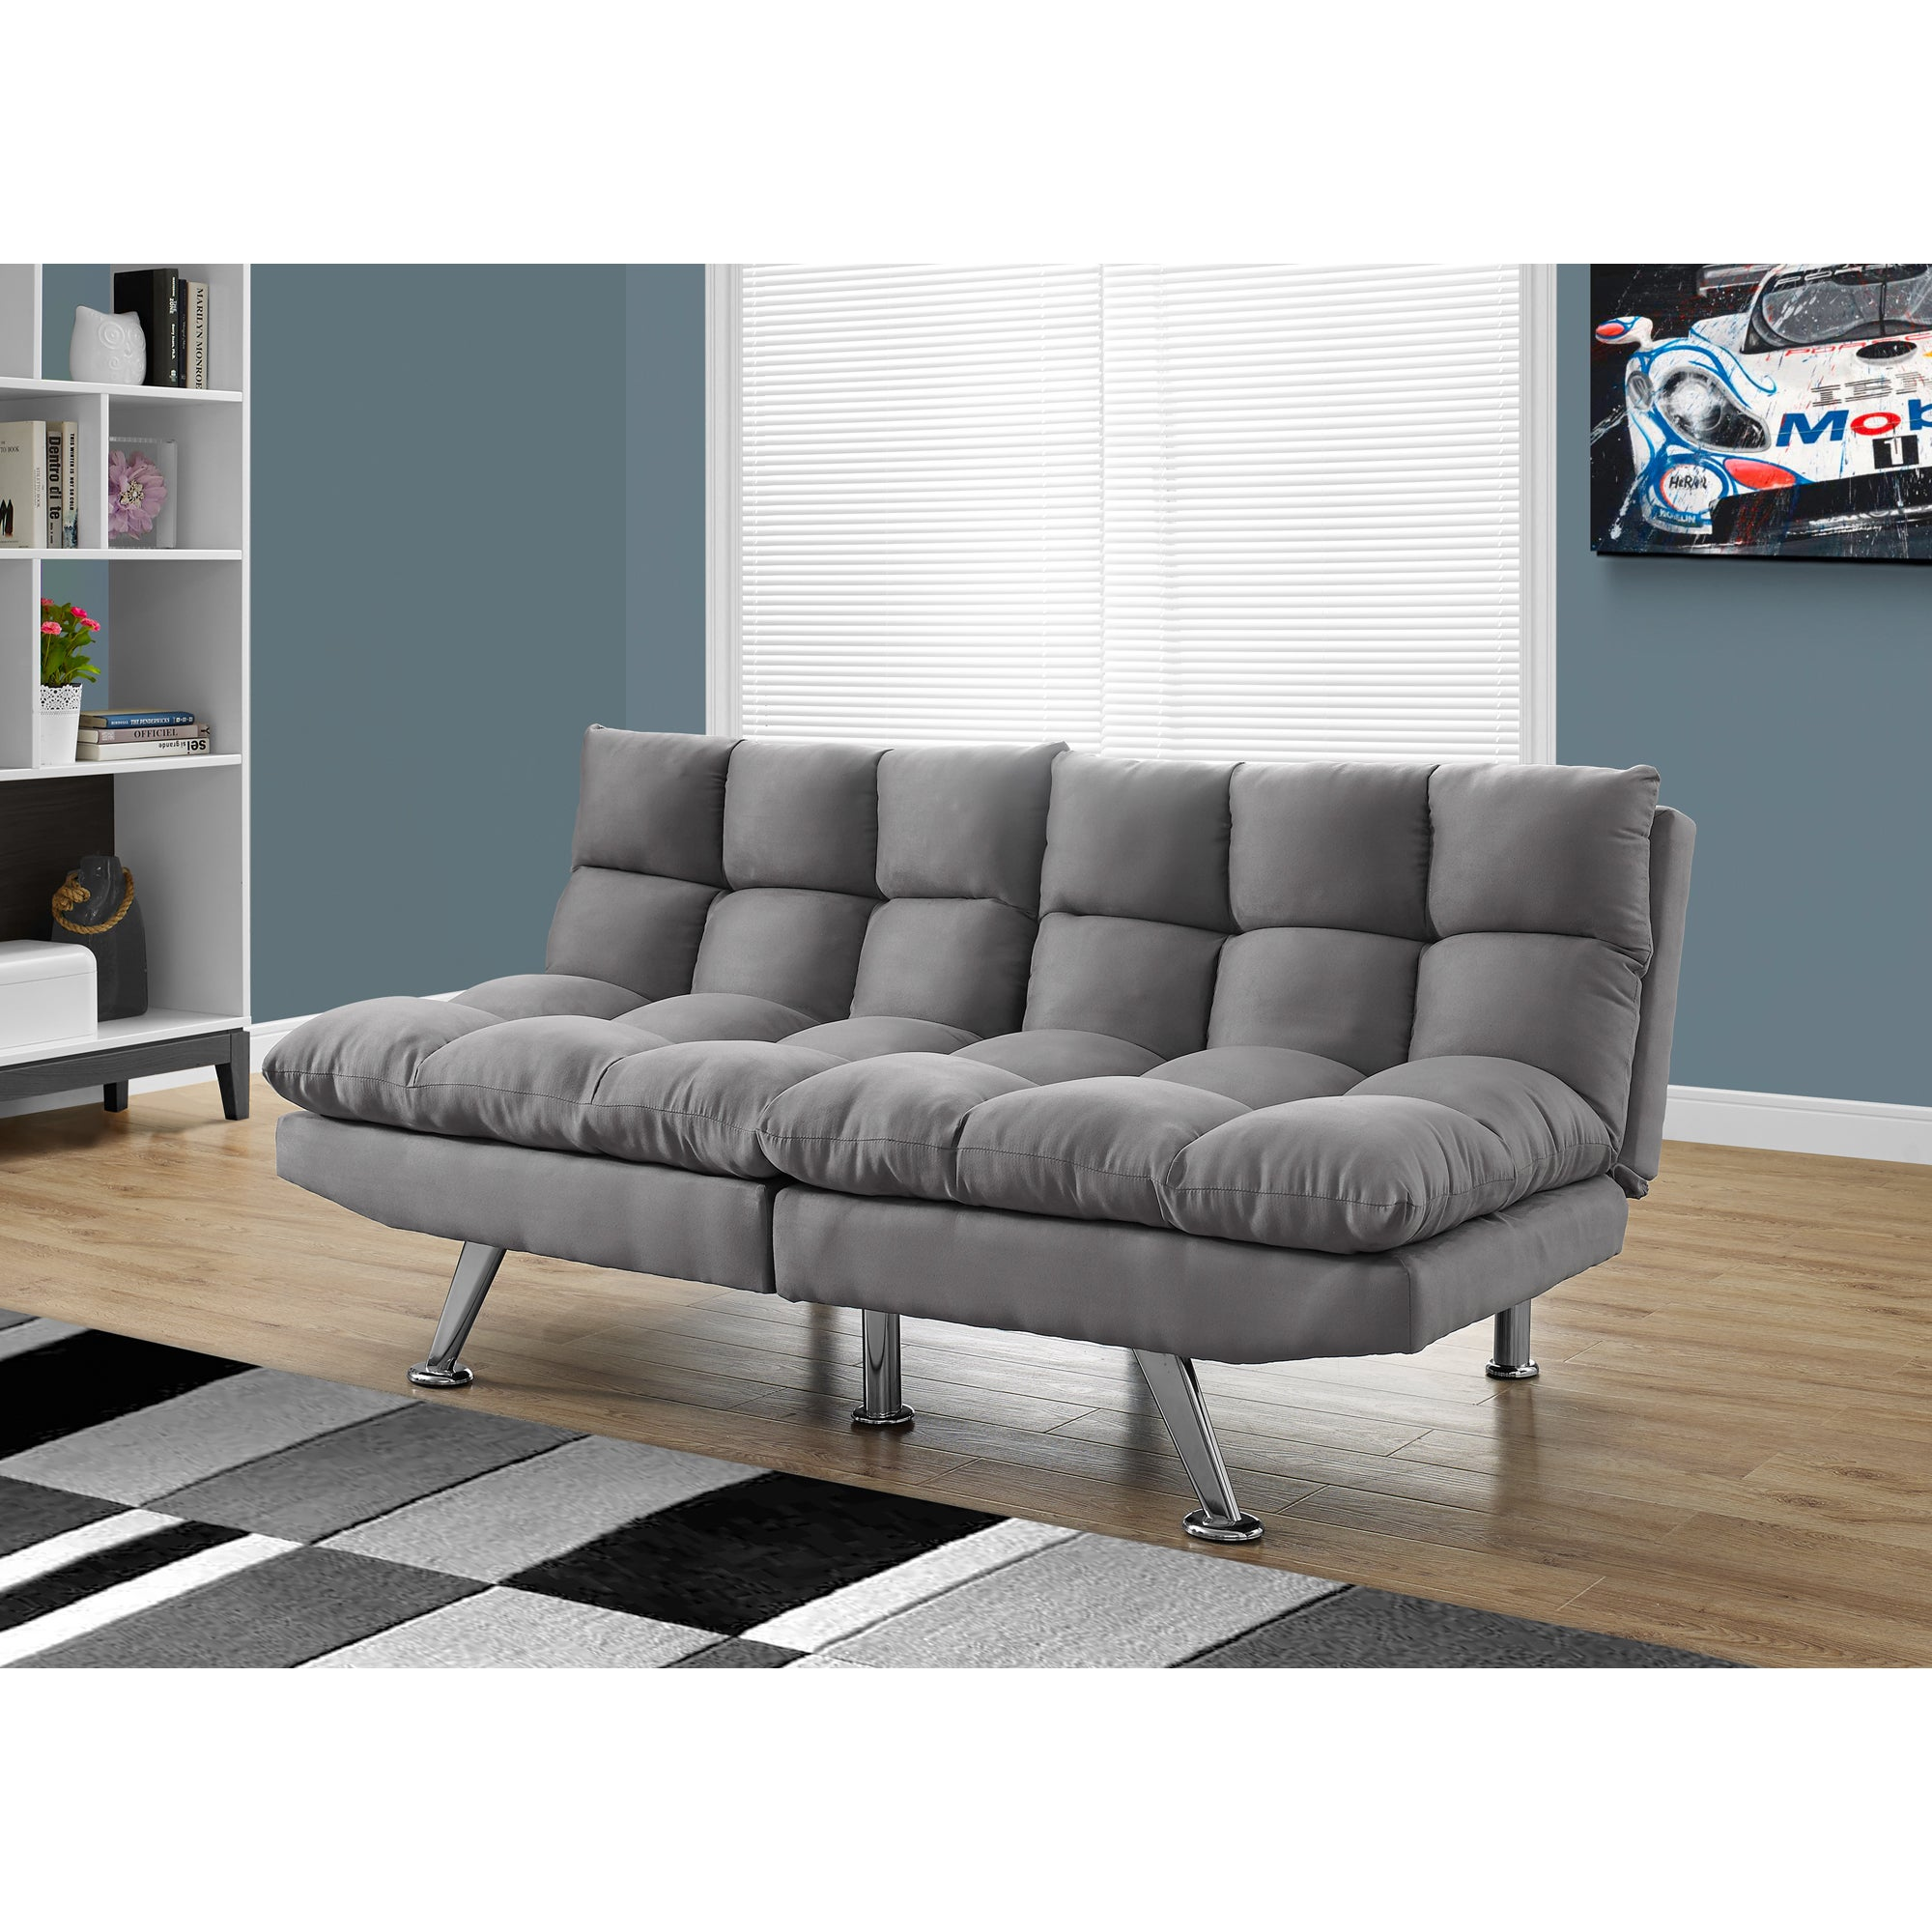 bed futon grann ikea chaise new fresh com of with sofa chair photos clack black lugnvik click longue clubanfi modern